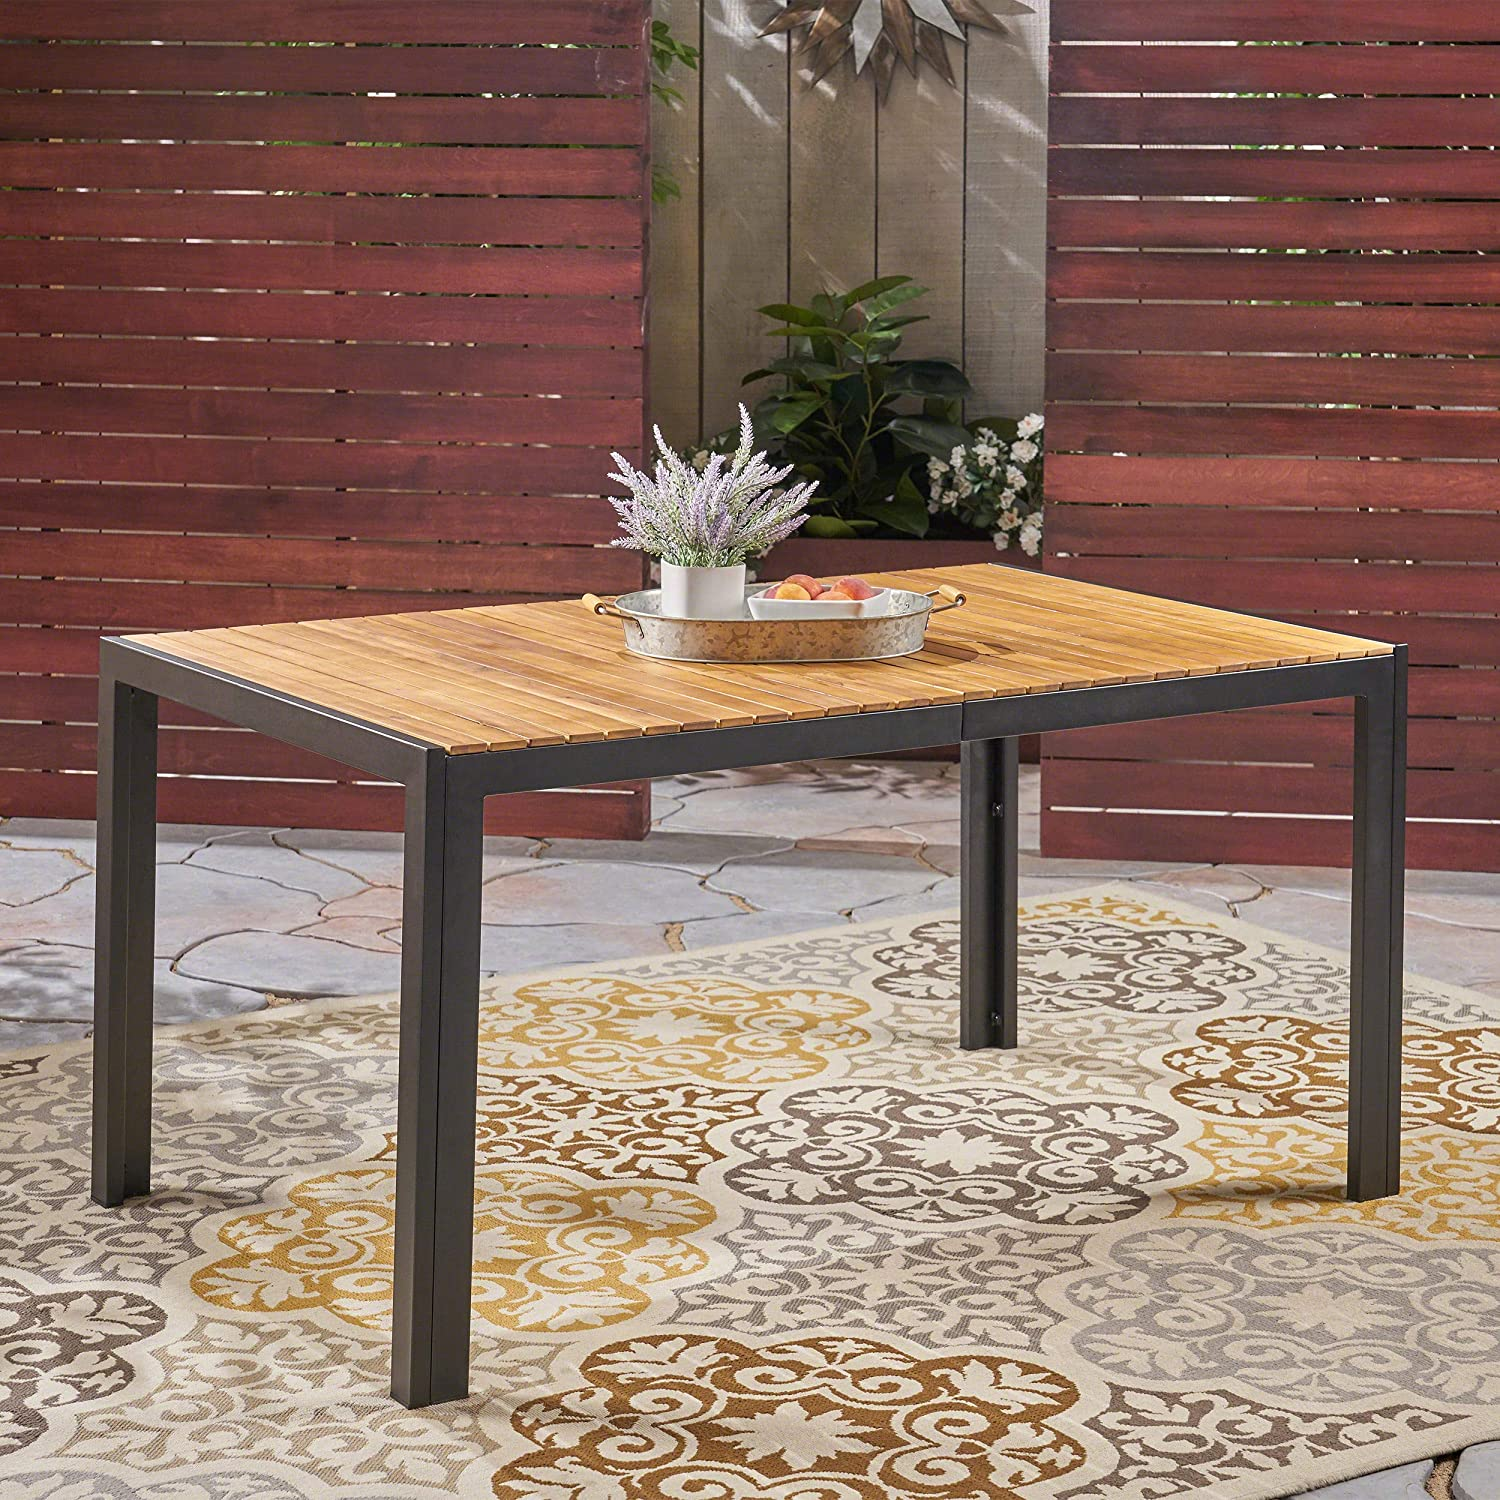 Amazon.com: Great Deal Furniture Tamia - Mesa de comedor de ...